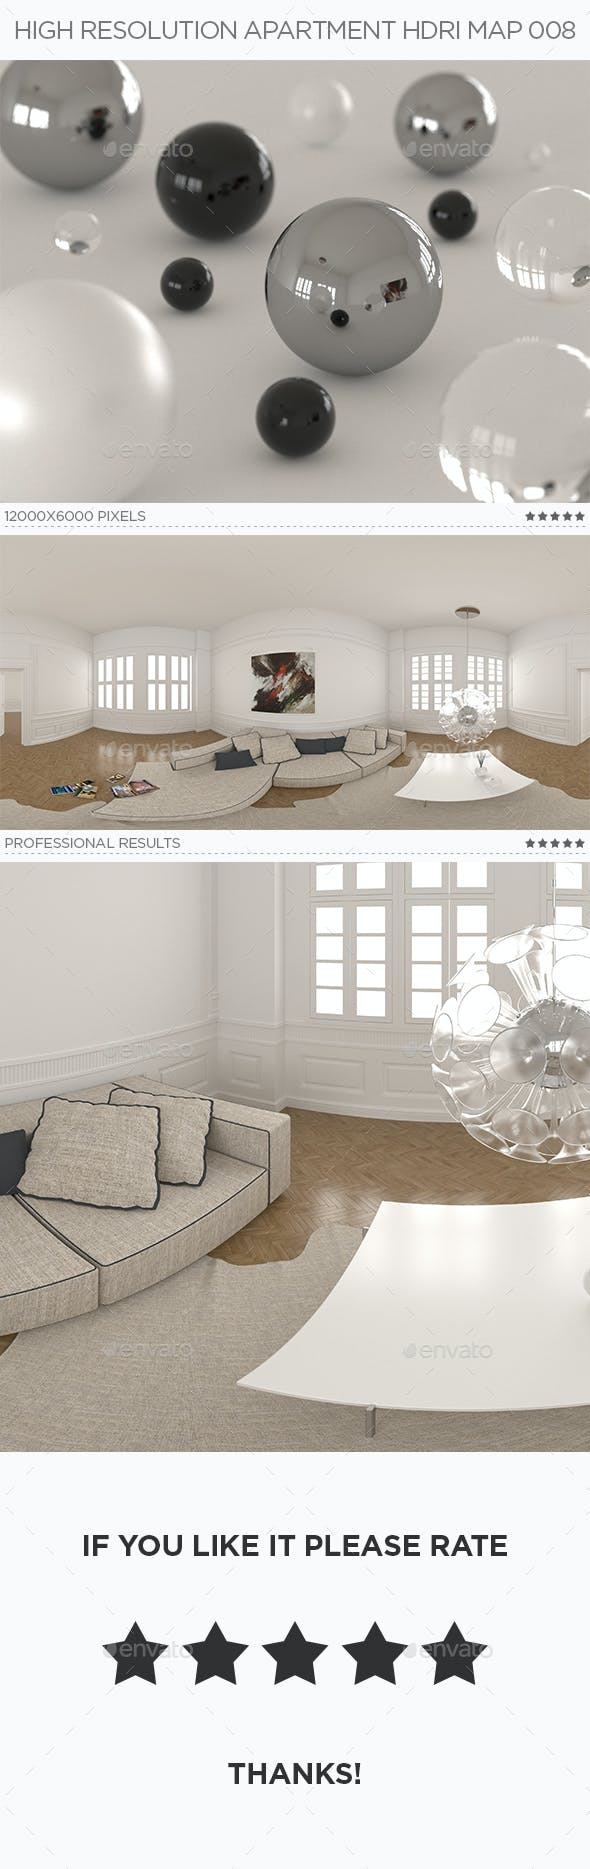 High Resolution Apartment HDRi Map 008 - 3DOcean Item for Sale